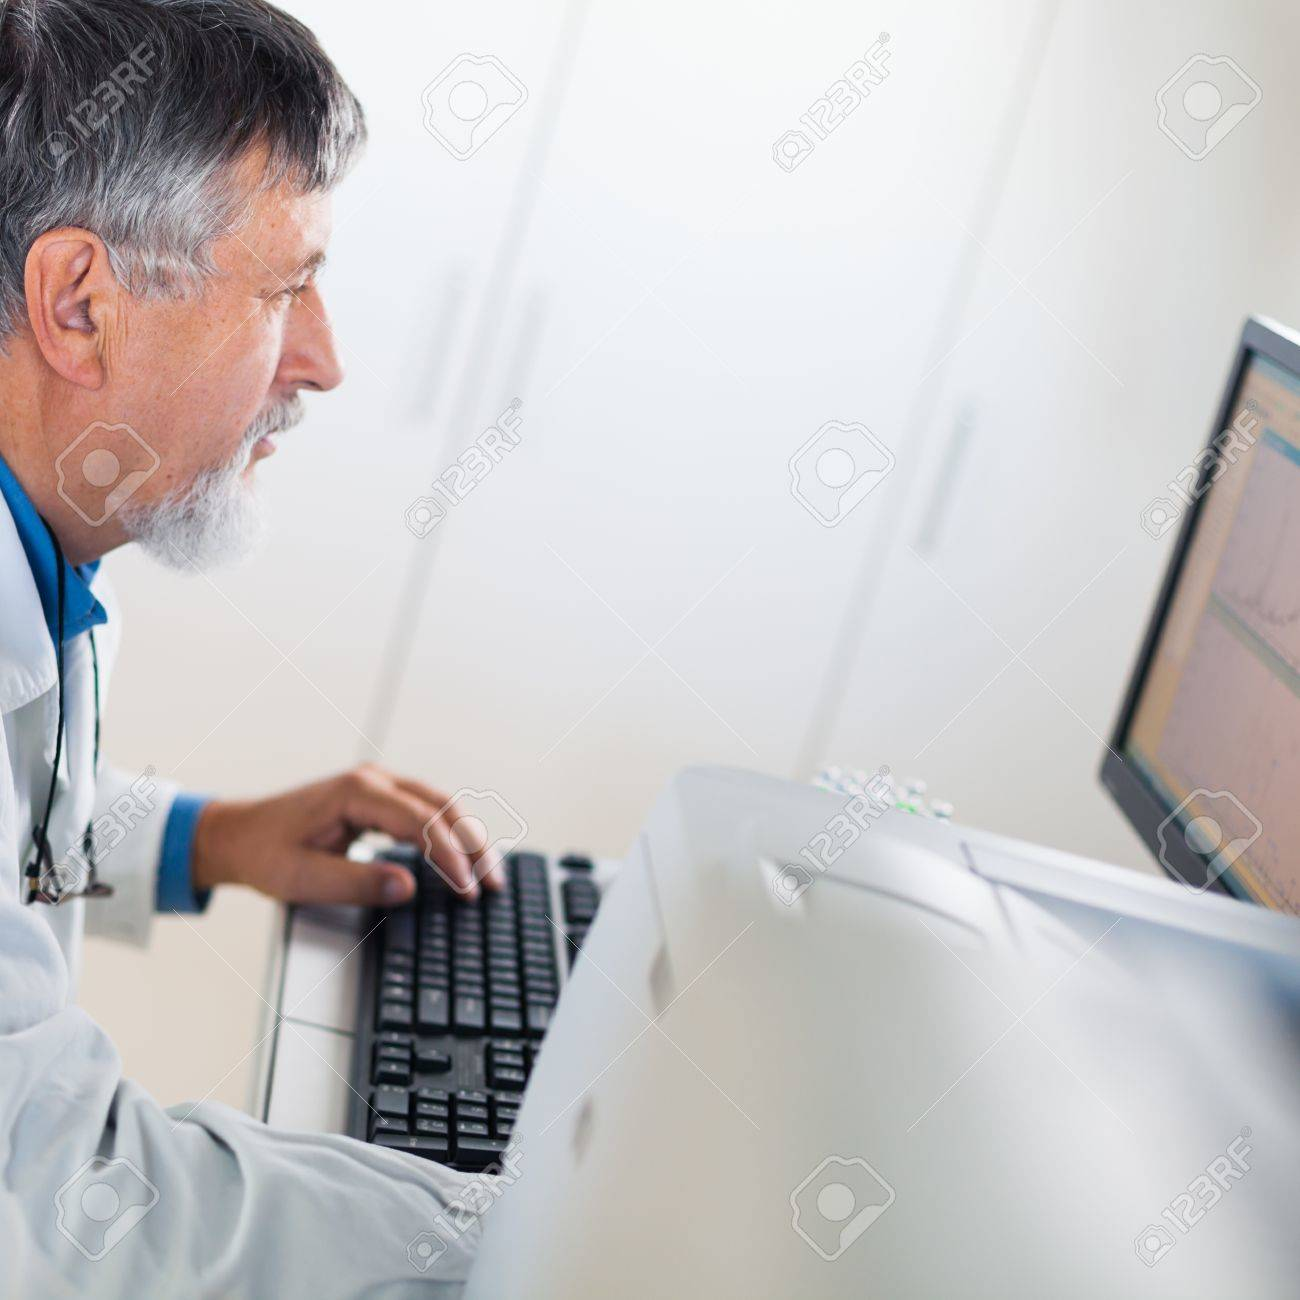 Senior researcher using a computer in the lab while working on an experiment (color toned image) Stock Photo - 13444666